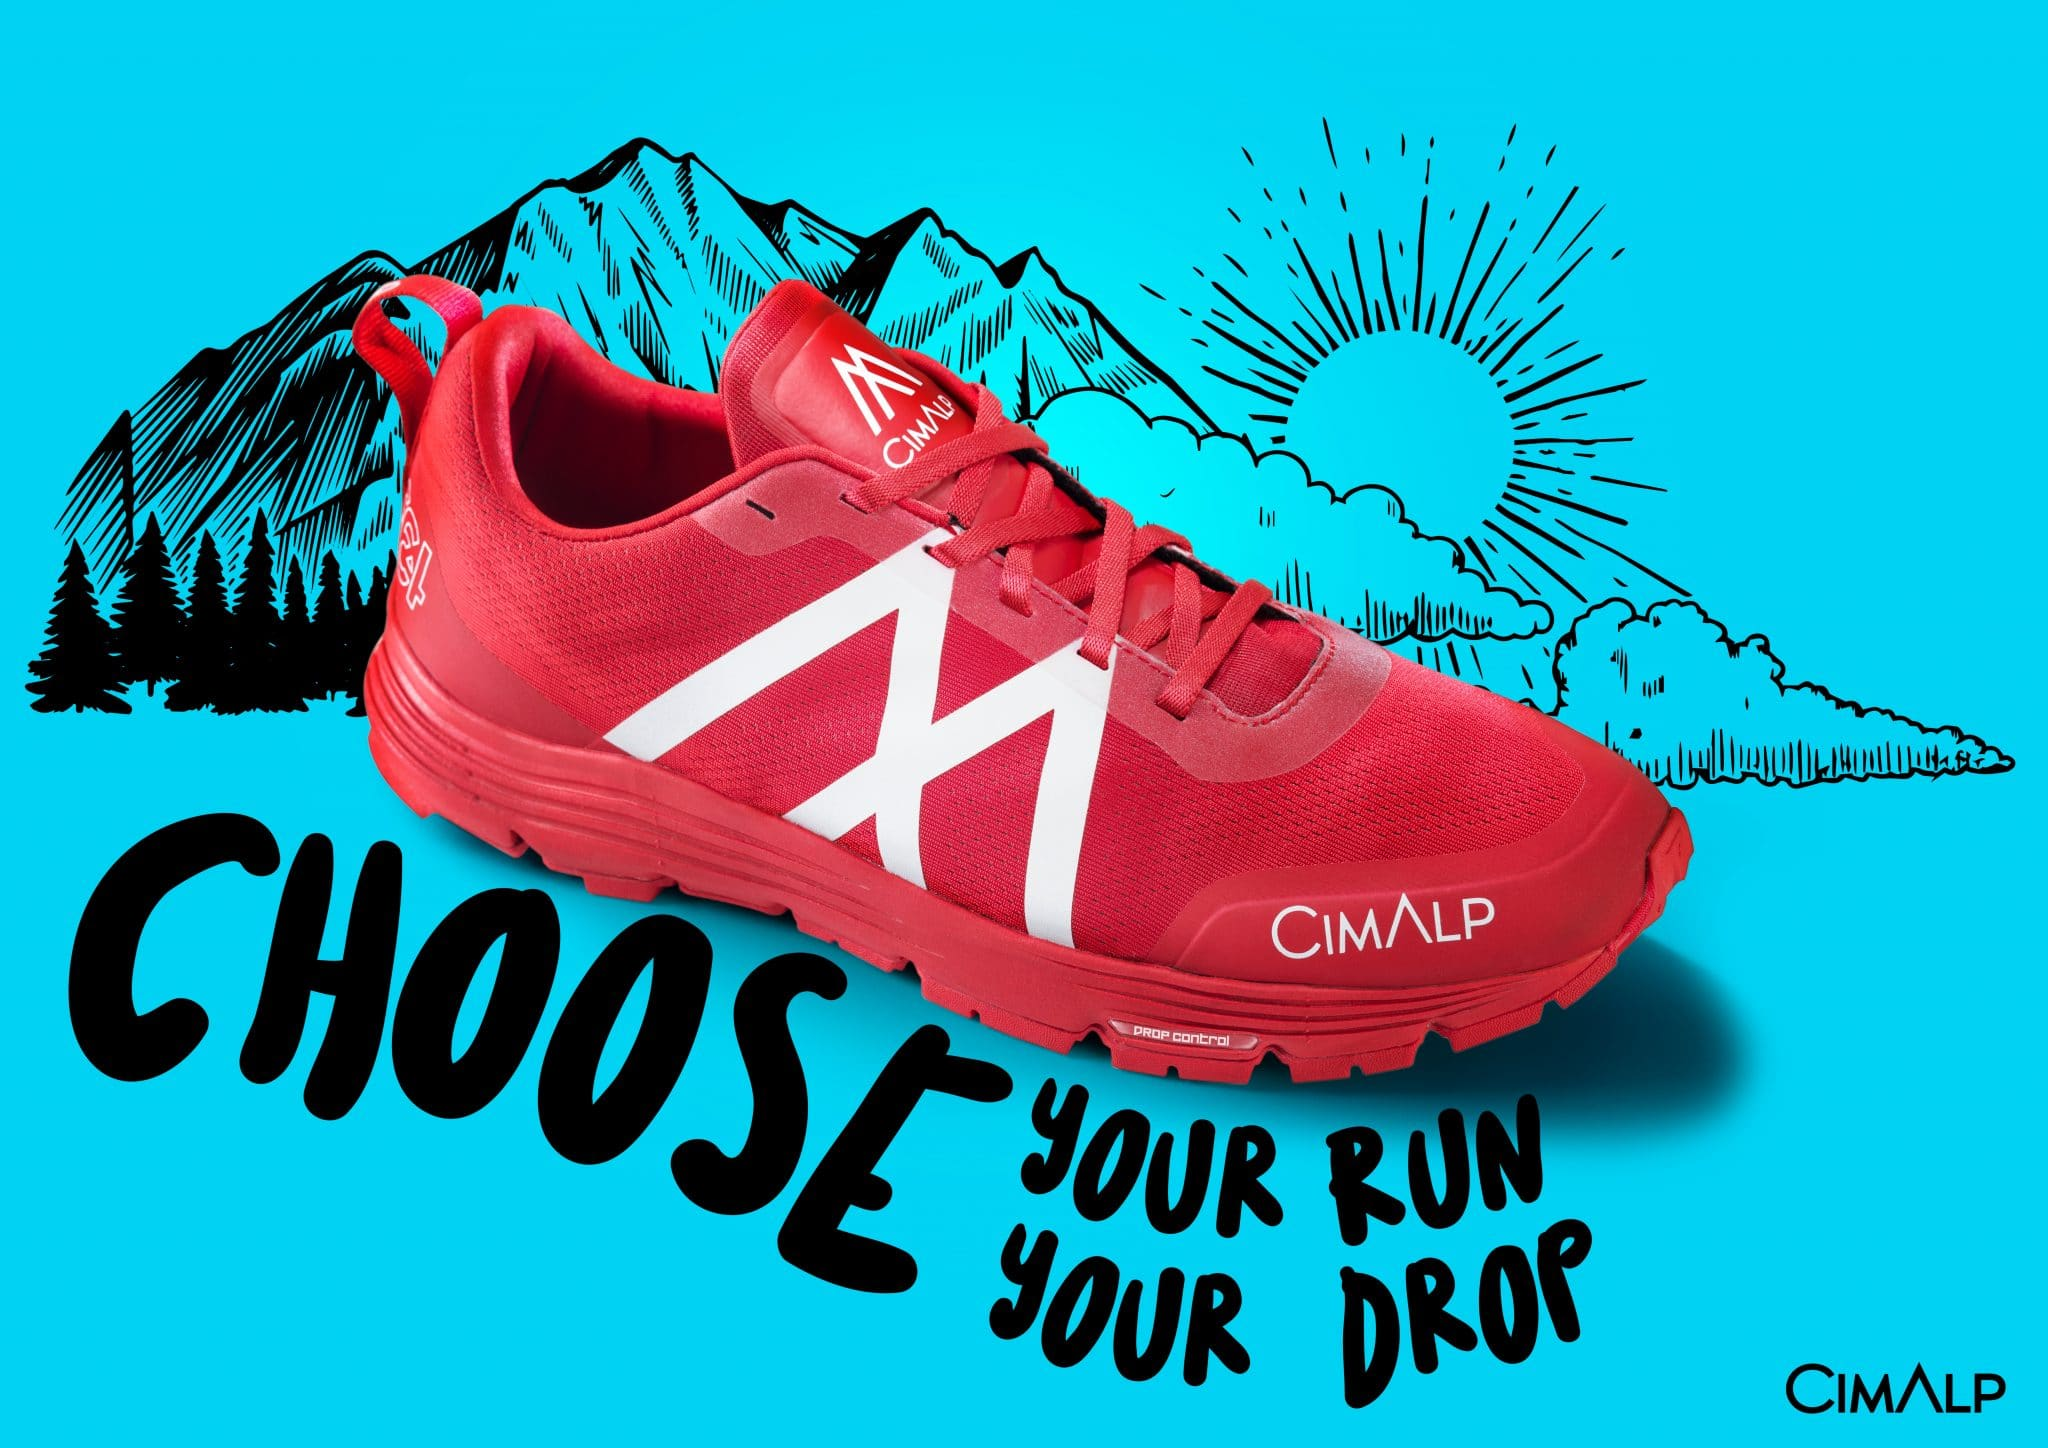 Chaussures CimAlp 864 Drop Evolution